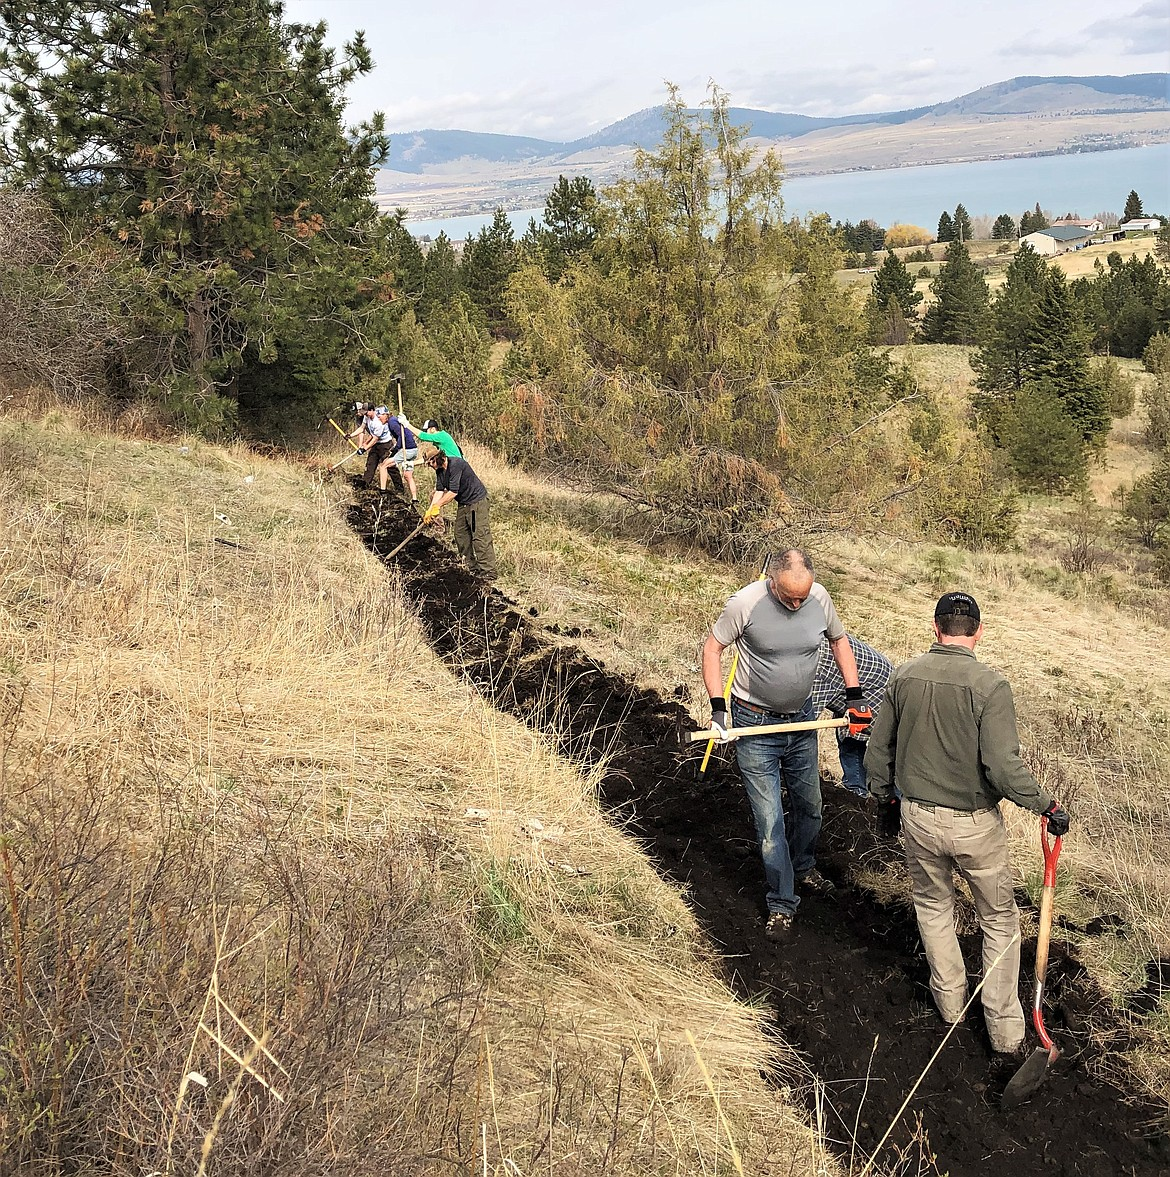 A new foot and bike path will be completed by the end of May in the Ridgewater development overlooking Polson and Flathead Lake. The trail has been entirely built by volunteers, with the permission of the landowners, the Maddy family. (Courtesy of Mike Windauer)